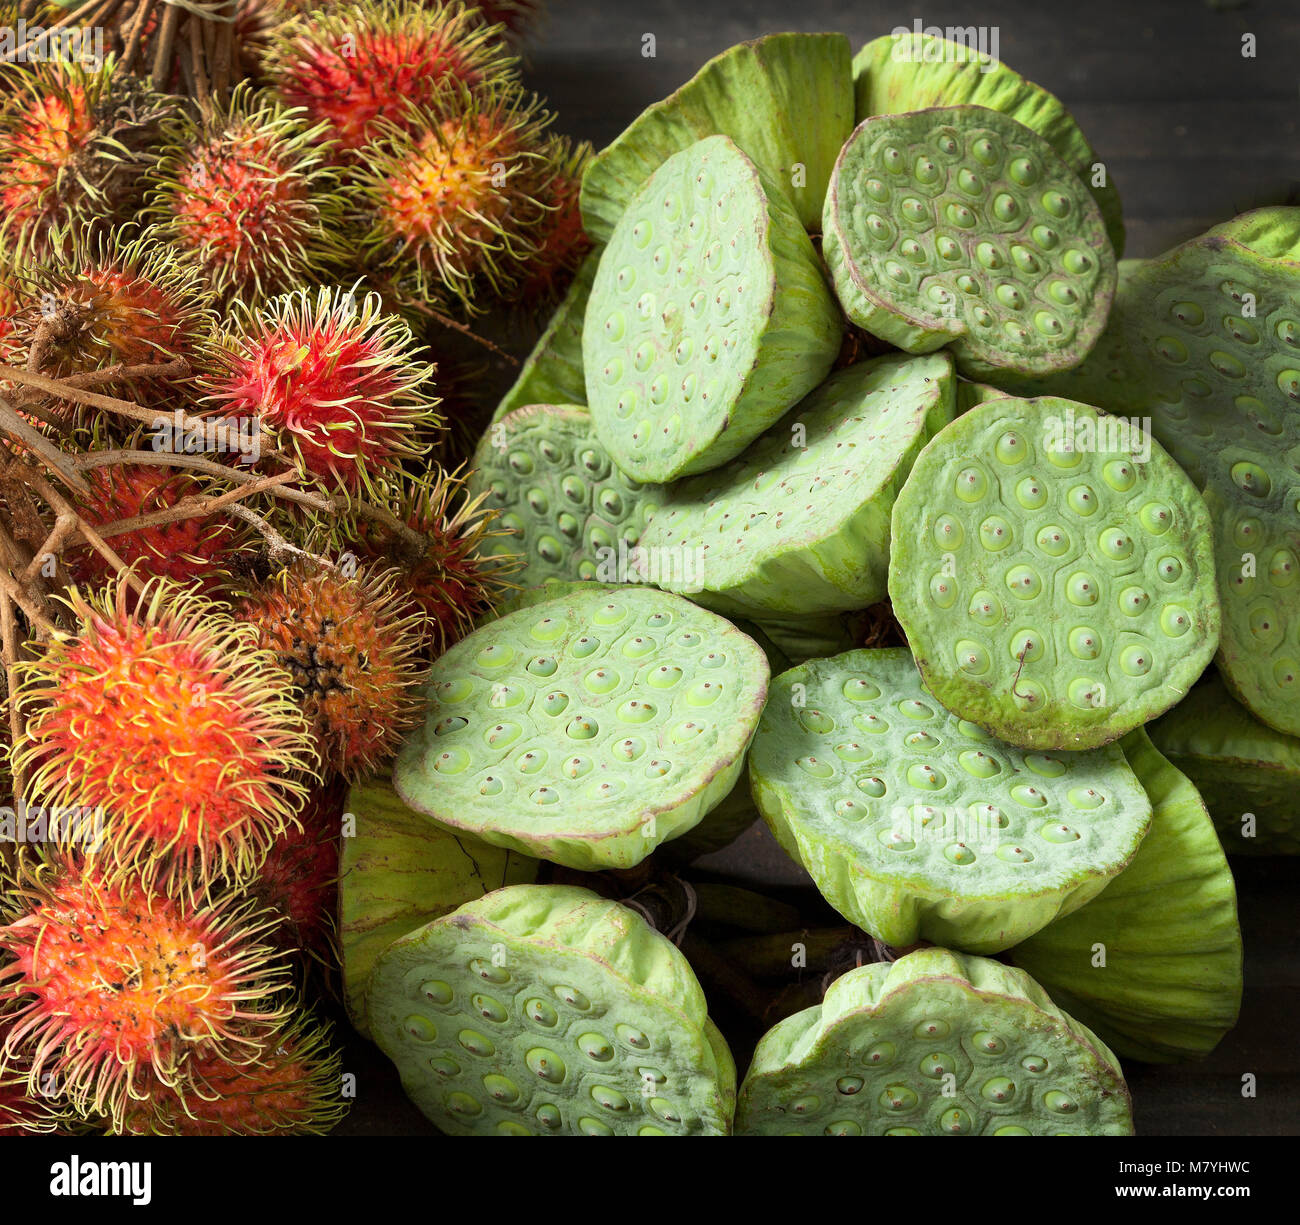 Rambutan Fruit And Lotus Flower Seed Heads On Sale In A Market